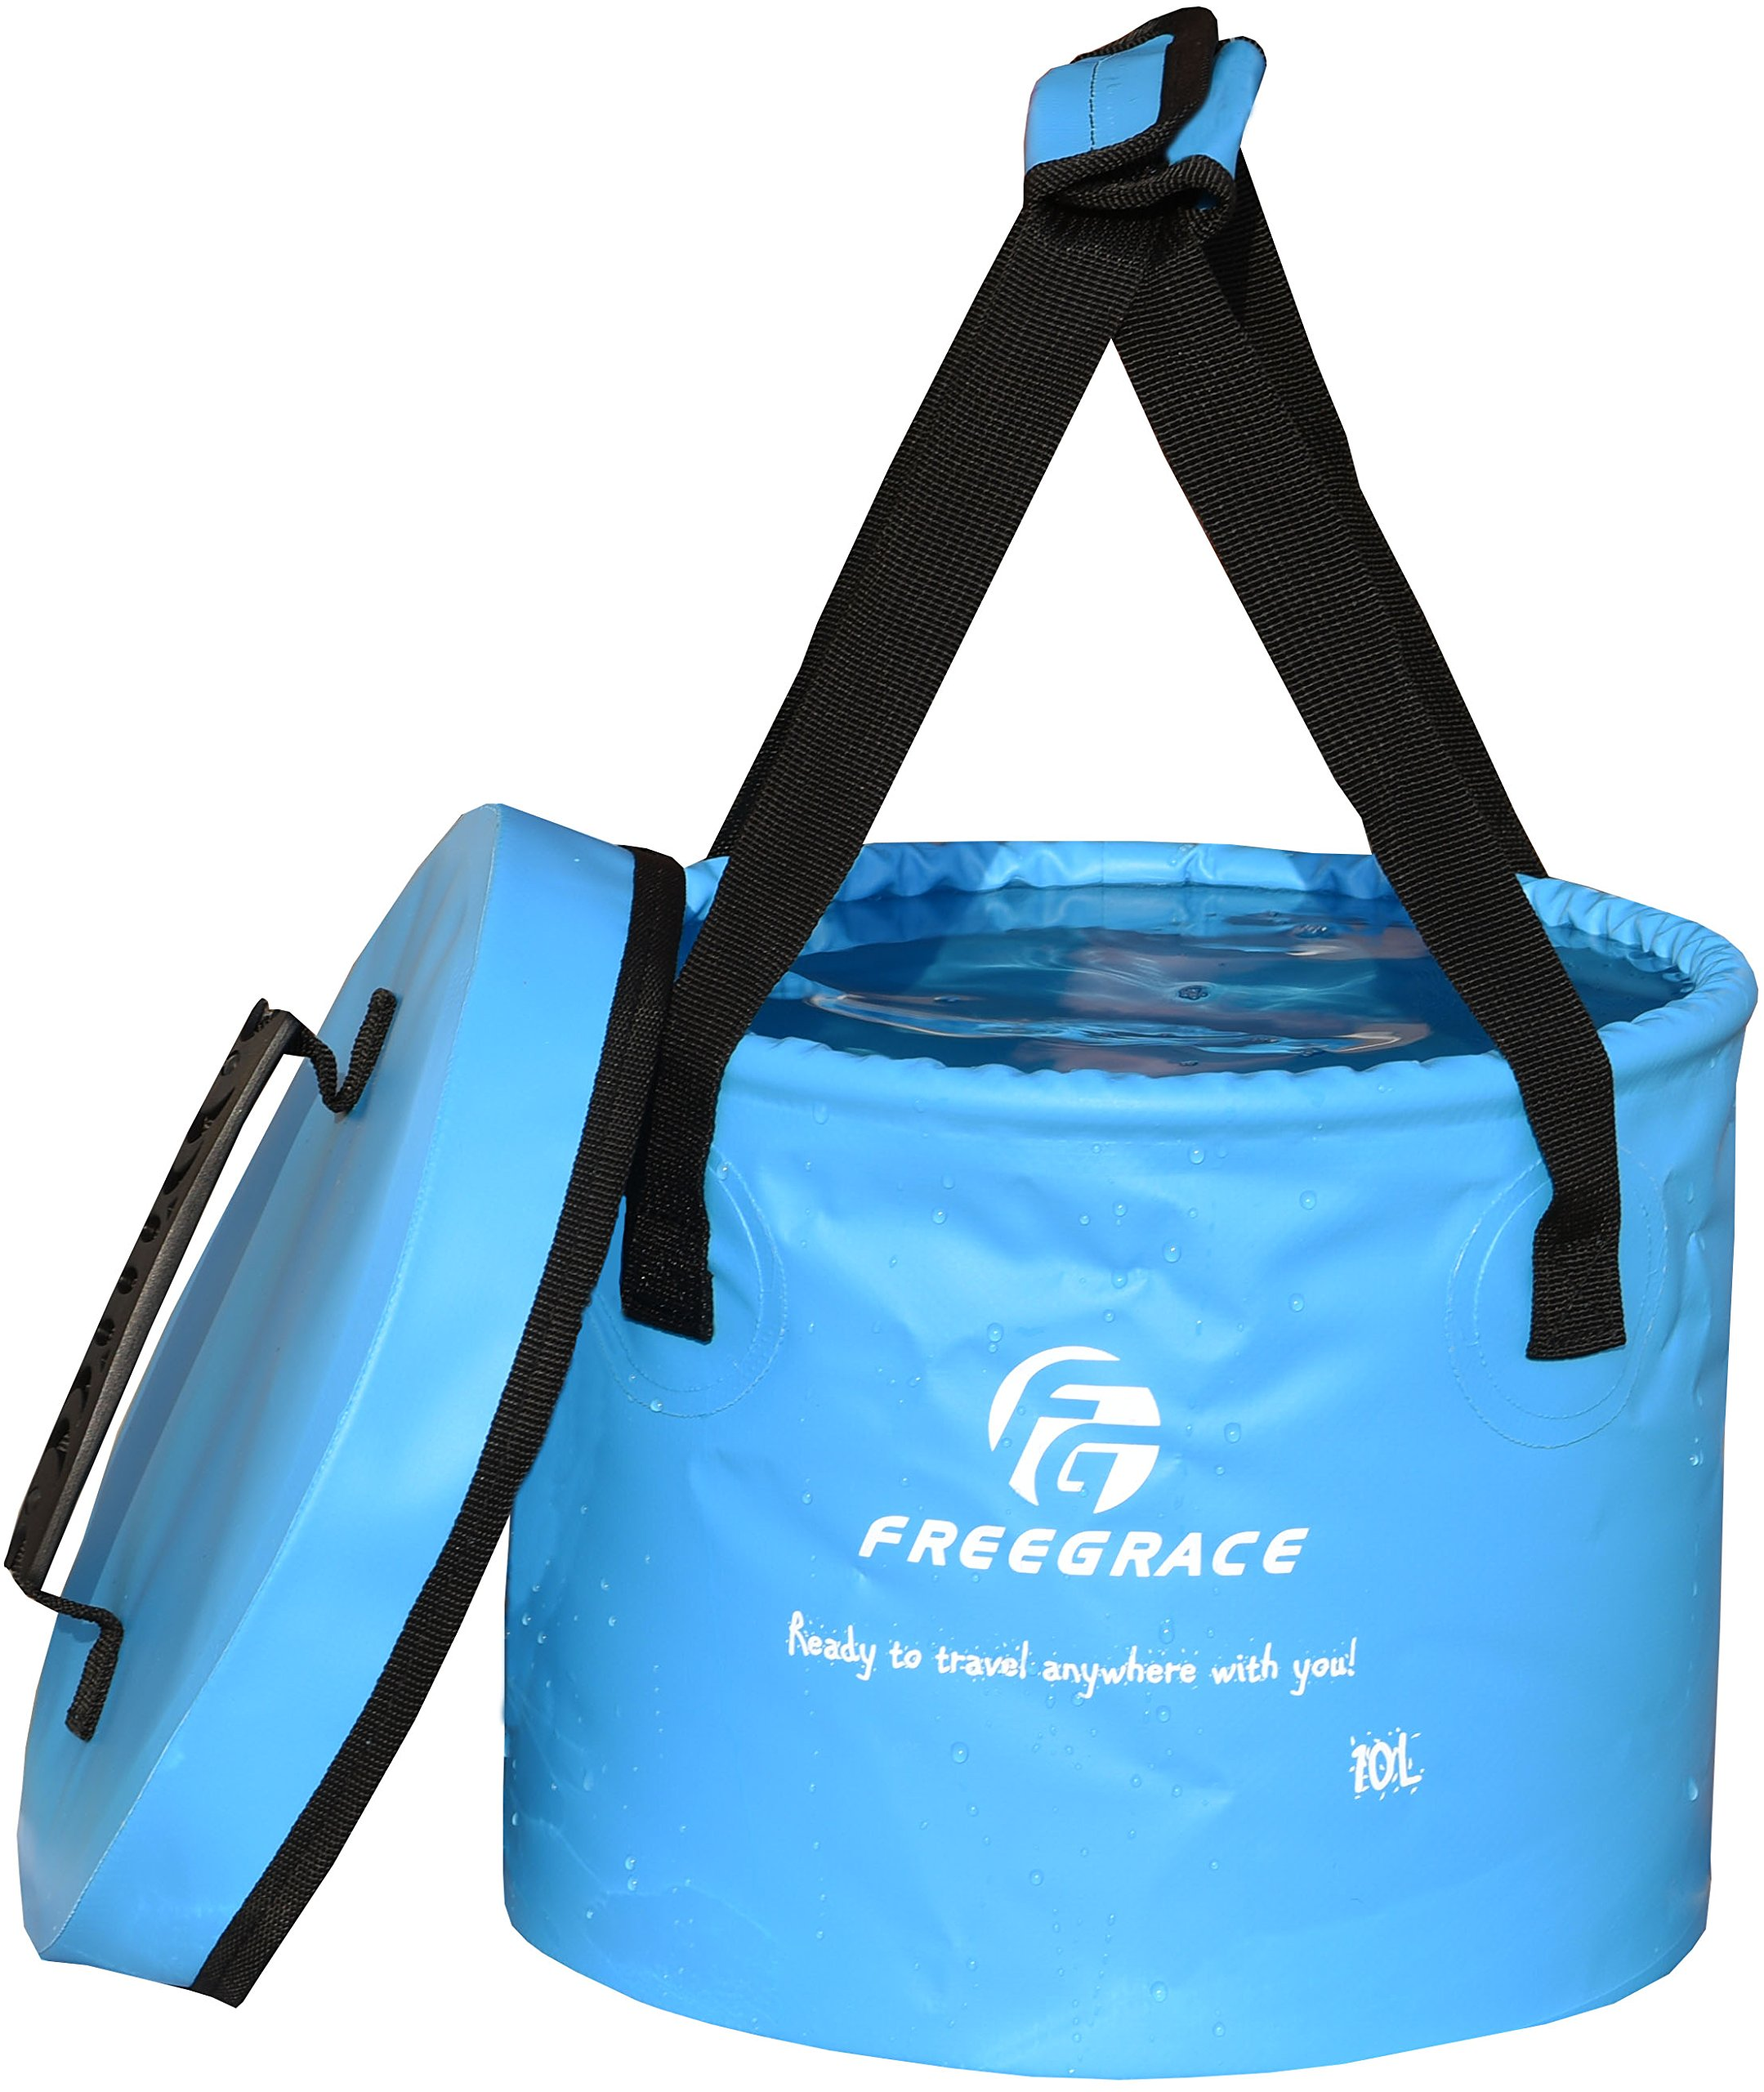 Freegrace Premium Collapsible Bucket - Multifunctional Folding Bucket - Perfect Gear for Camping, Hiking & Travel (Blue, 10L(Upgraded)) by Freegrace